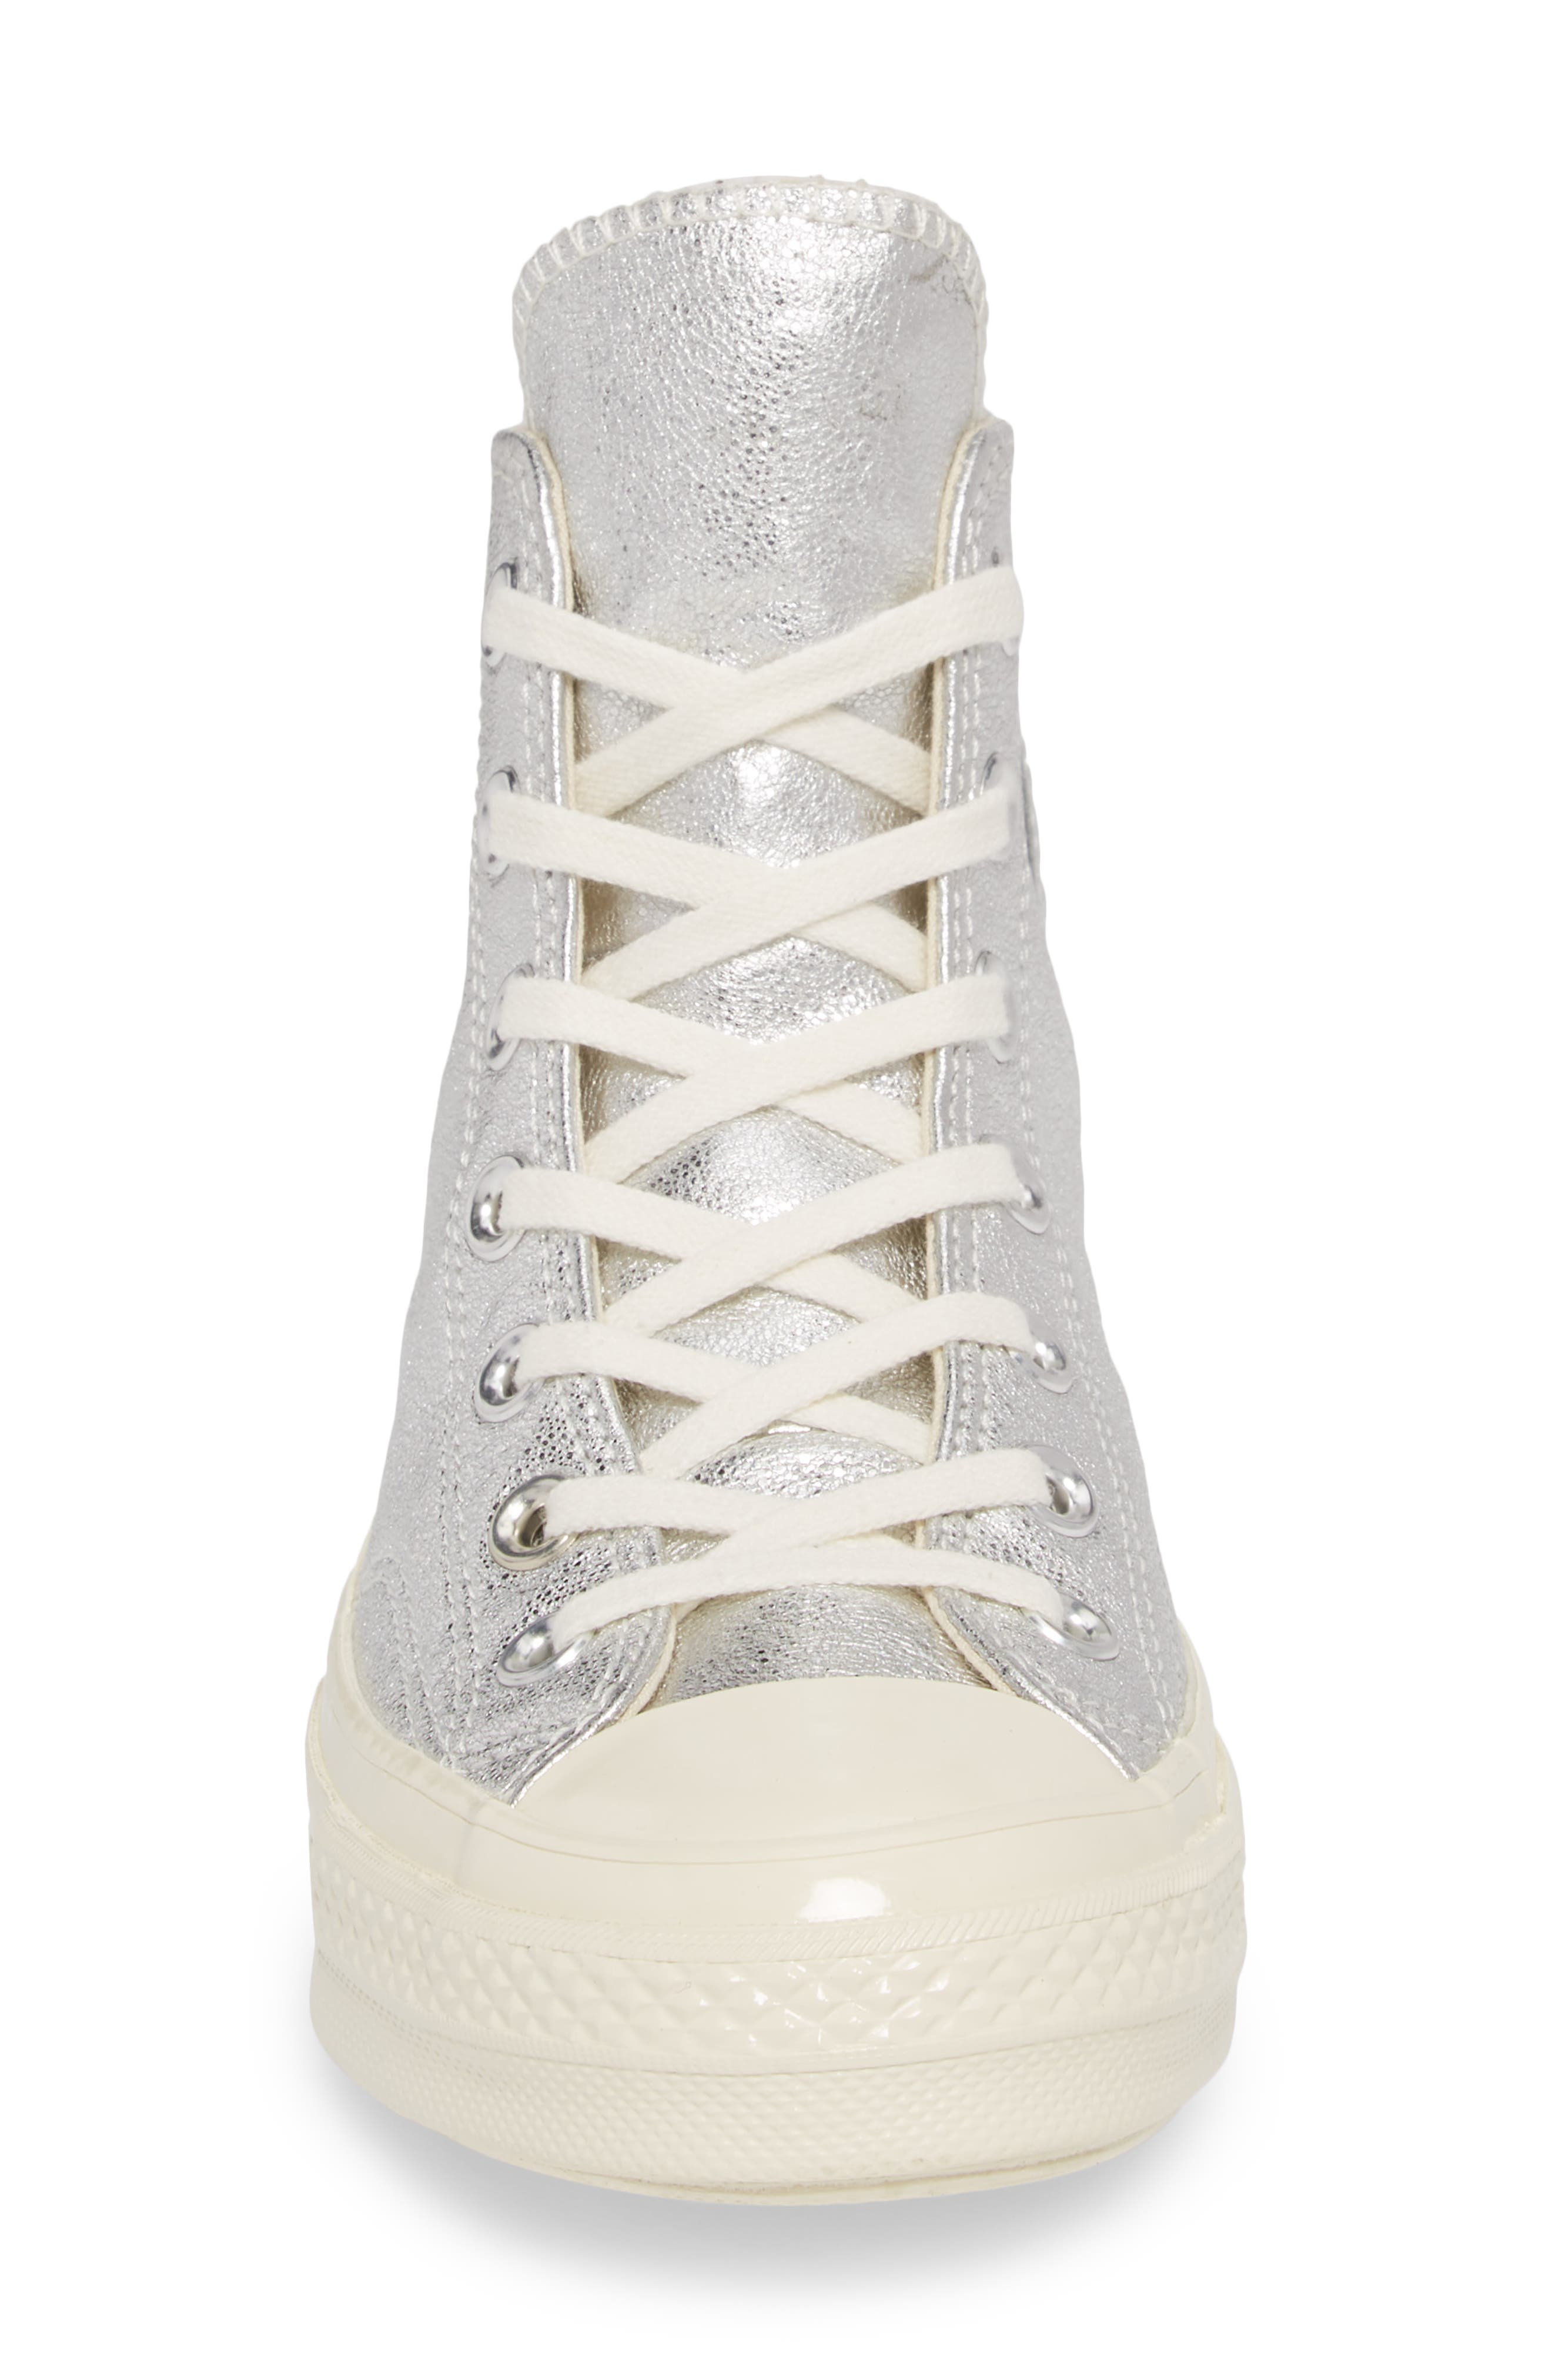 Chuck Taylor<sup>®</sup> All Star<sup>®</sup> Heavy Metal 70 High Top Sneaker,                             Alternate thumbnail 10, color,